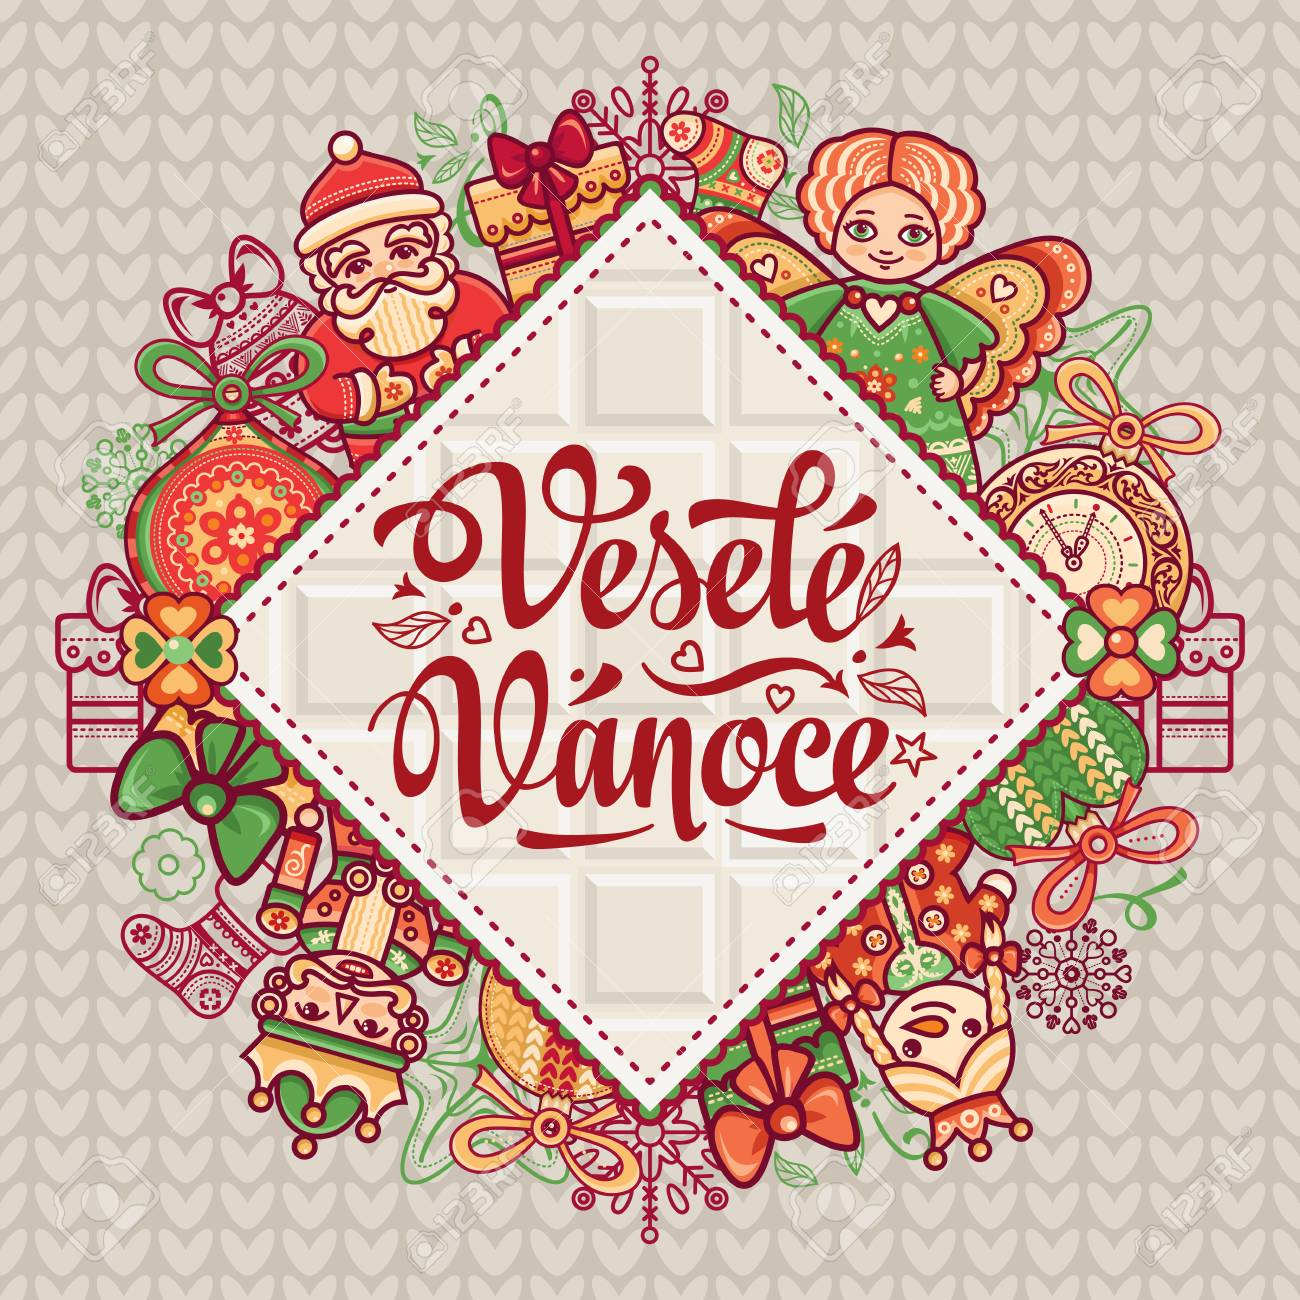 Vesele Vanoce. Christmas Message. Lettering Composition With ...